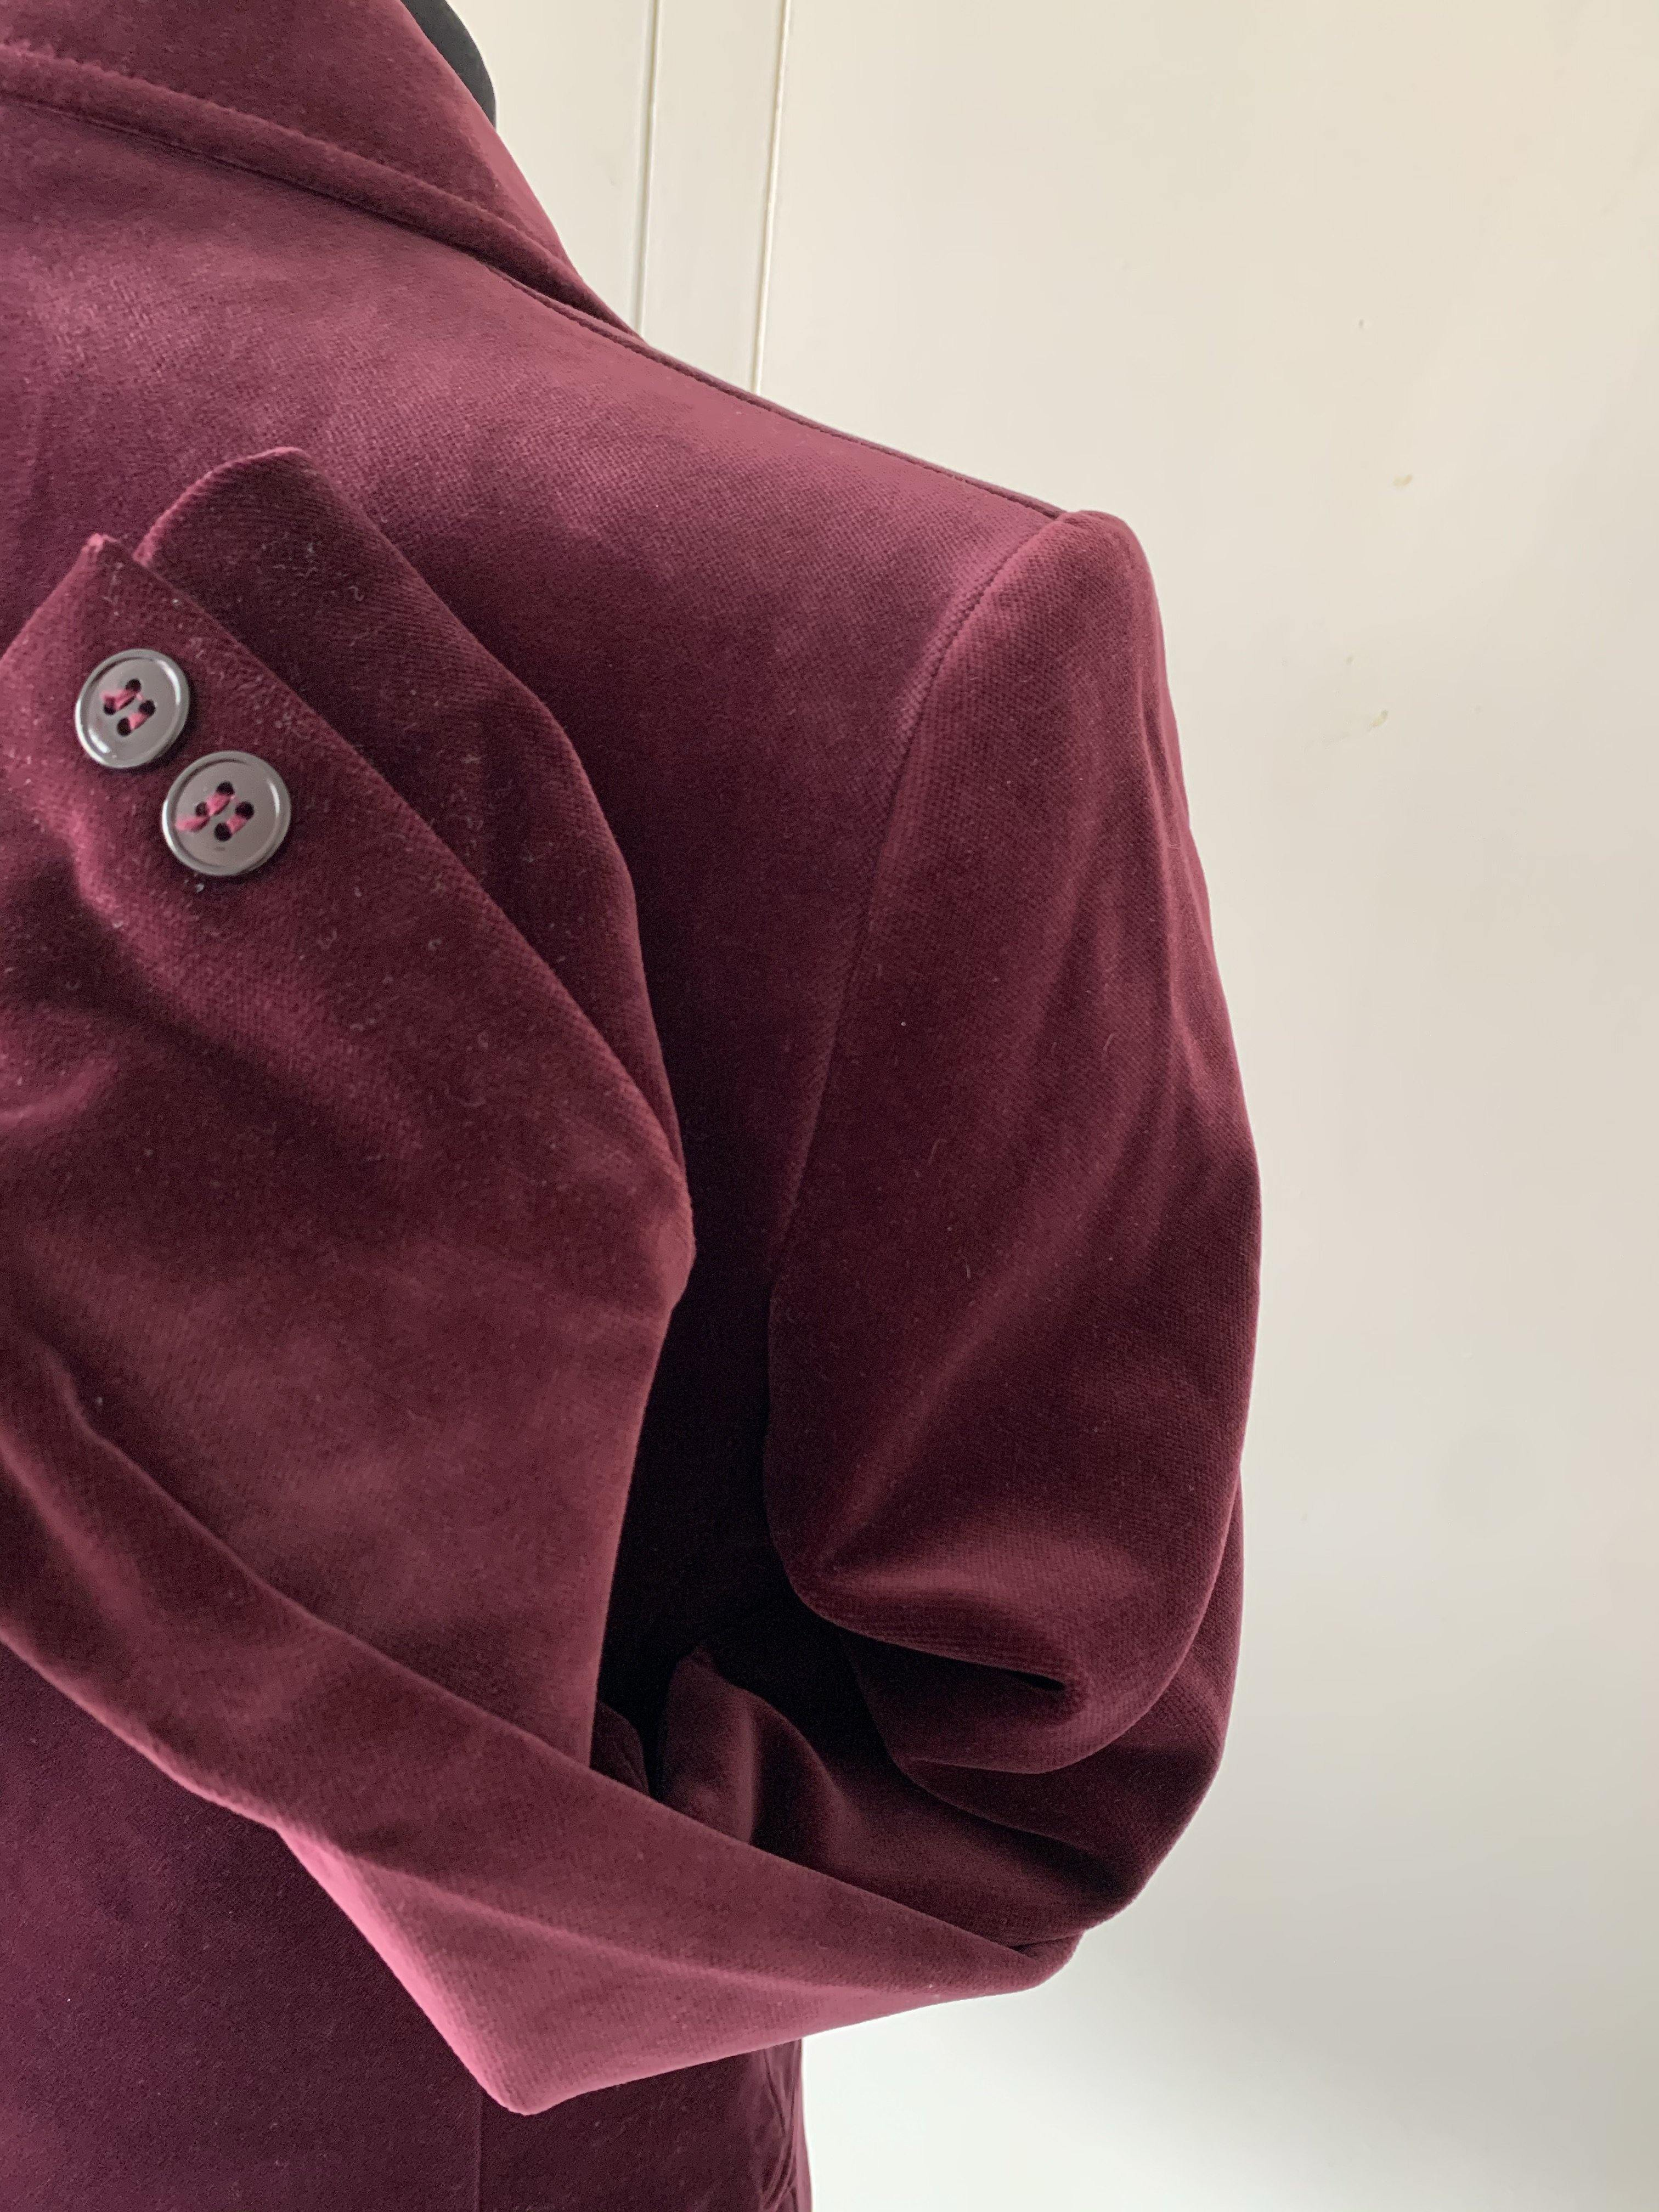 - ONE OF KIND - Vintage 70s Burgandy velvet blazer